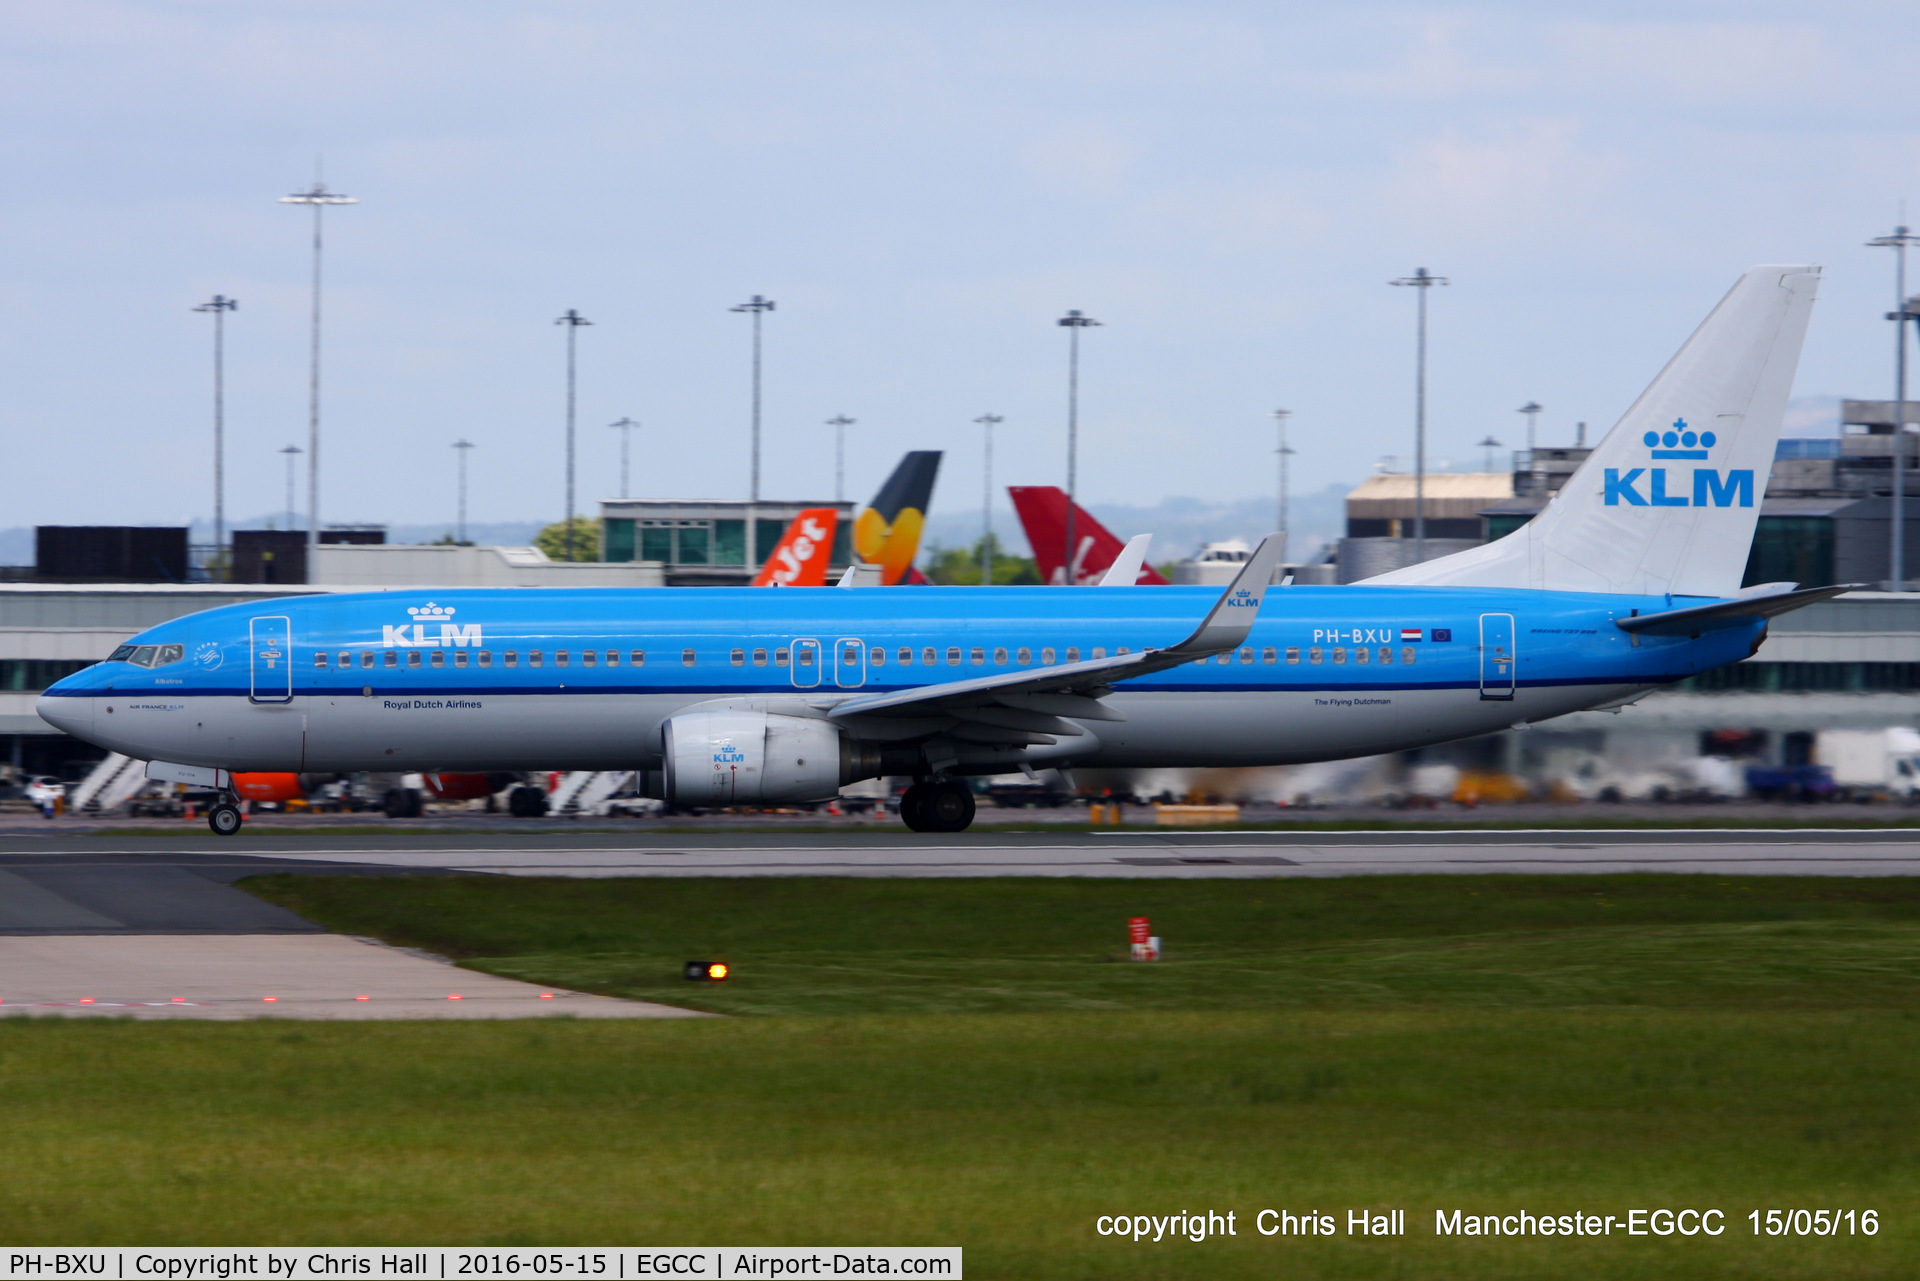 PH-BXU, 2006 Boeing 737-8BK C/N 33028, KLM Royal Dutch Airlines